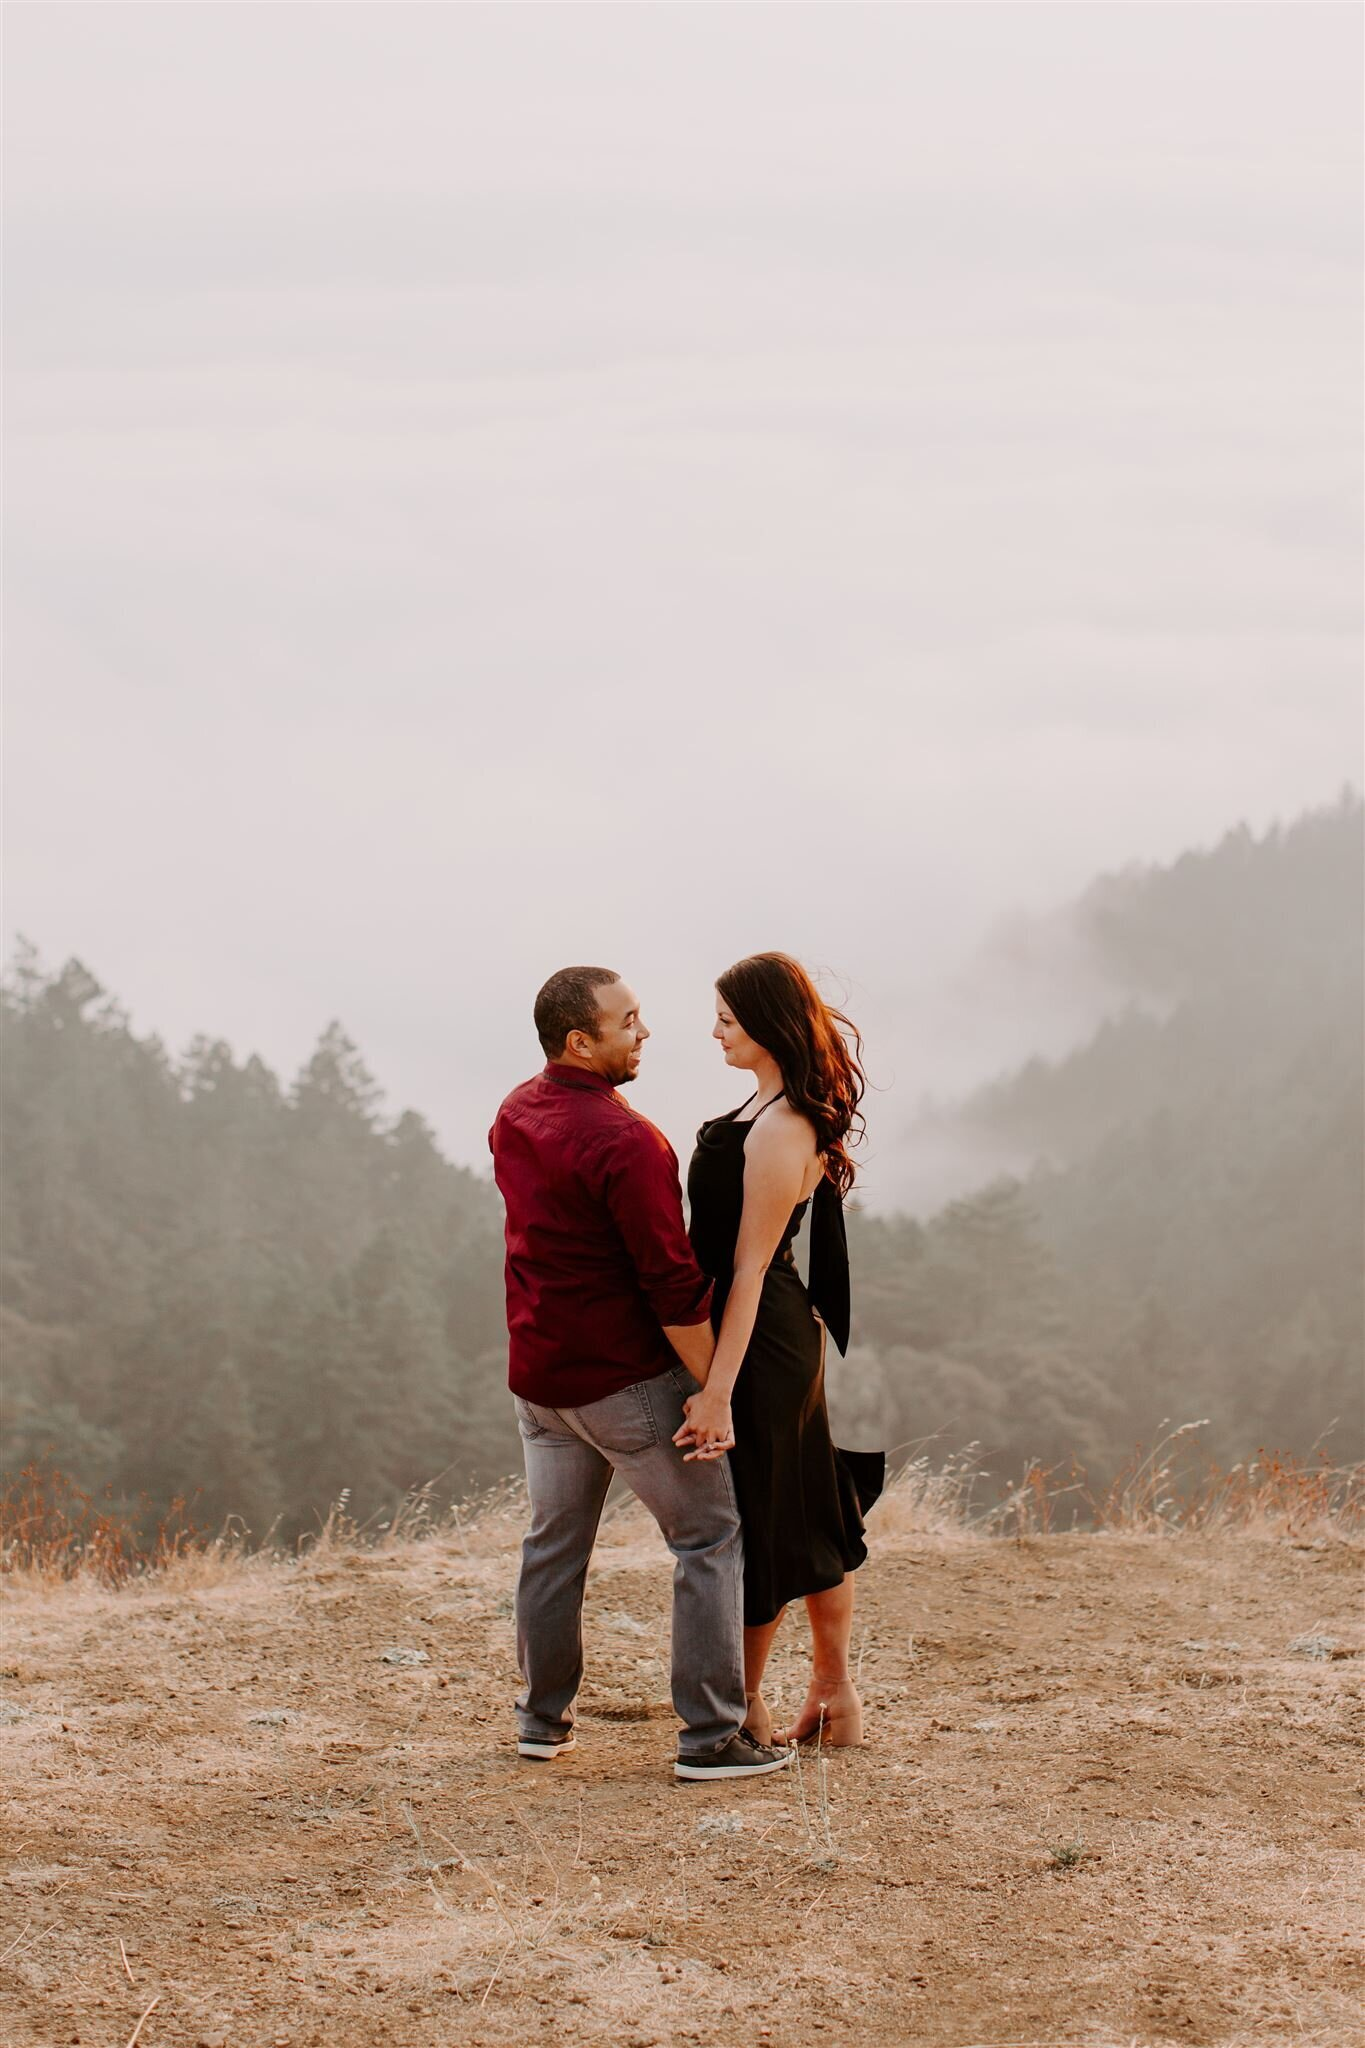 Heather_Jeremy_Mt-Tam-Engagement-Shoot_Hannah-Bergund-Photography-77_websize